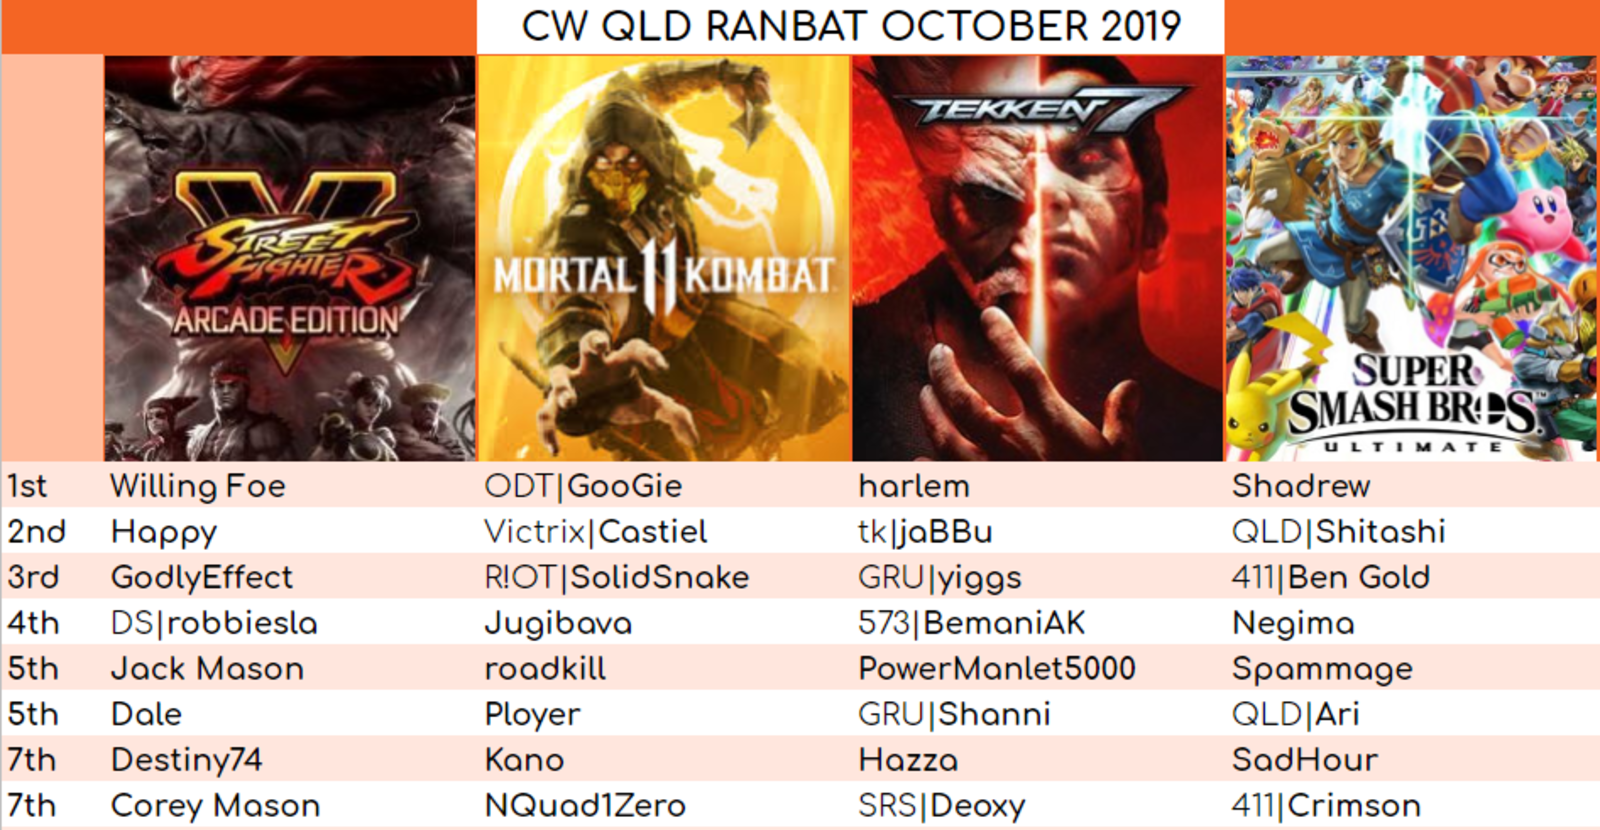 Table of results for QLD October Ranbat